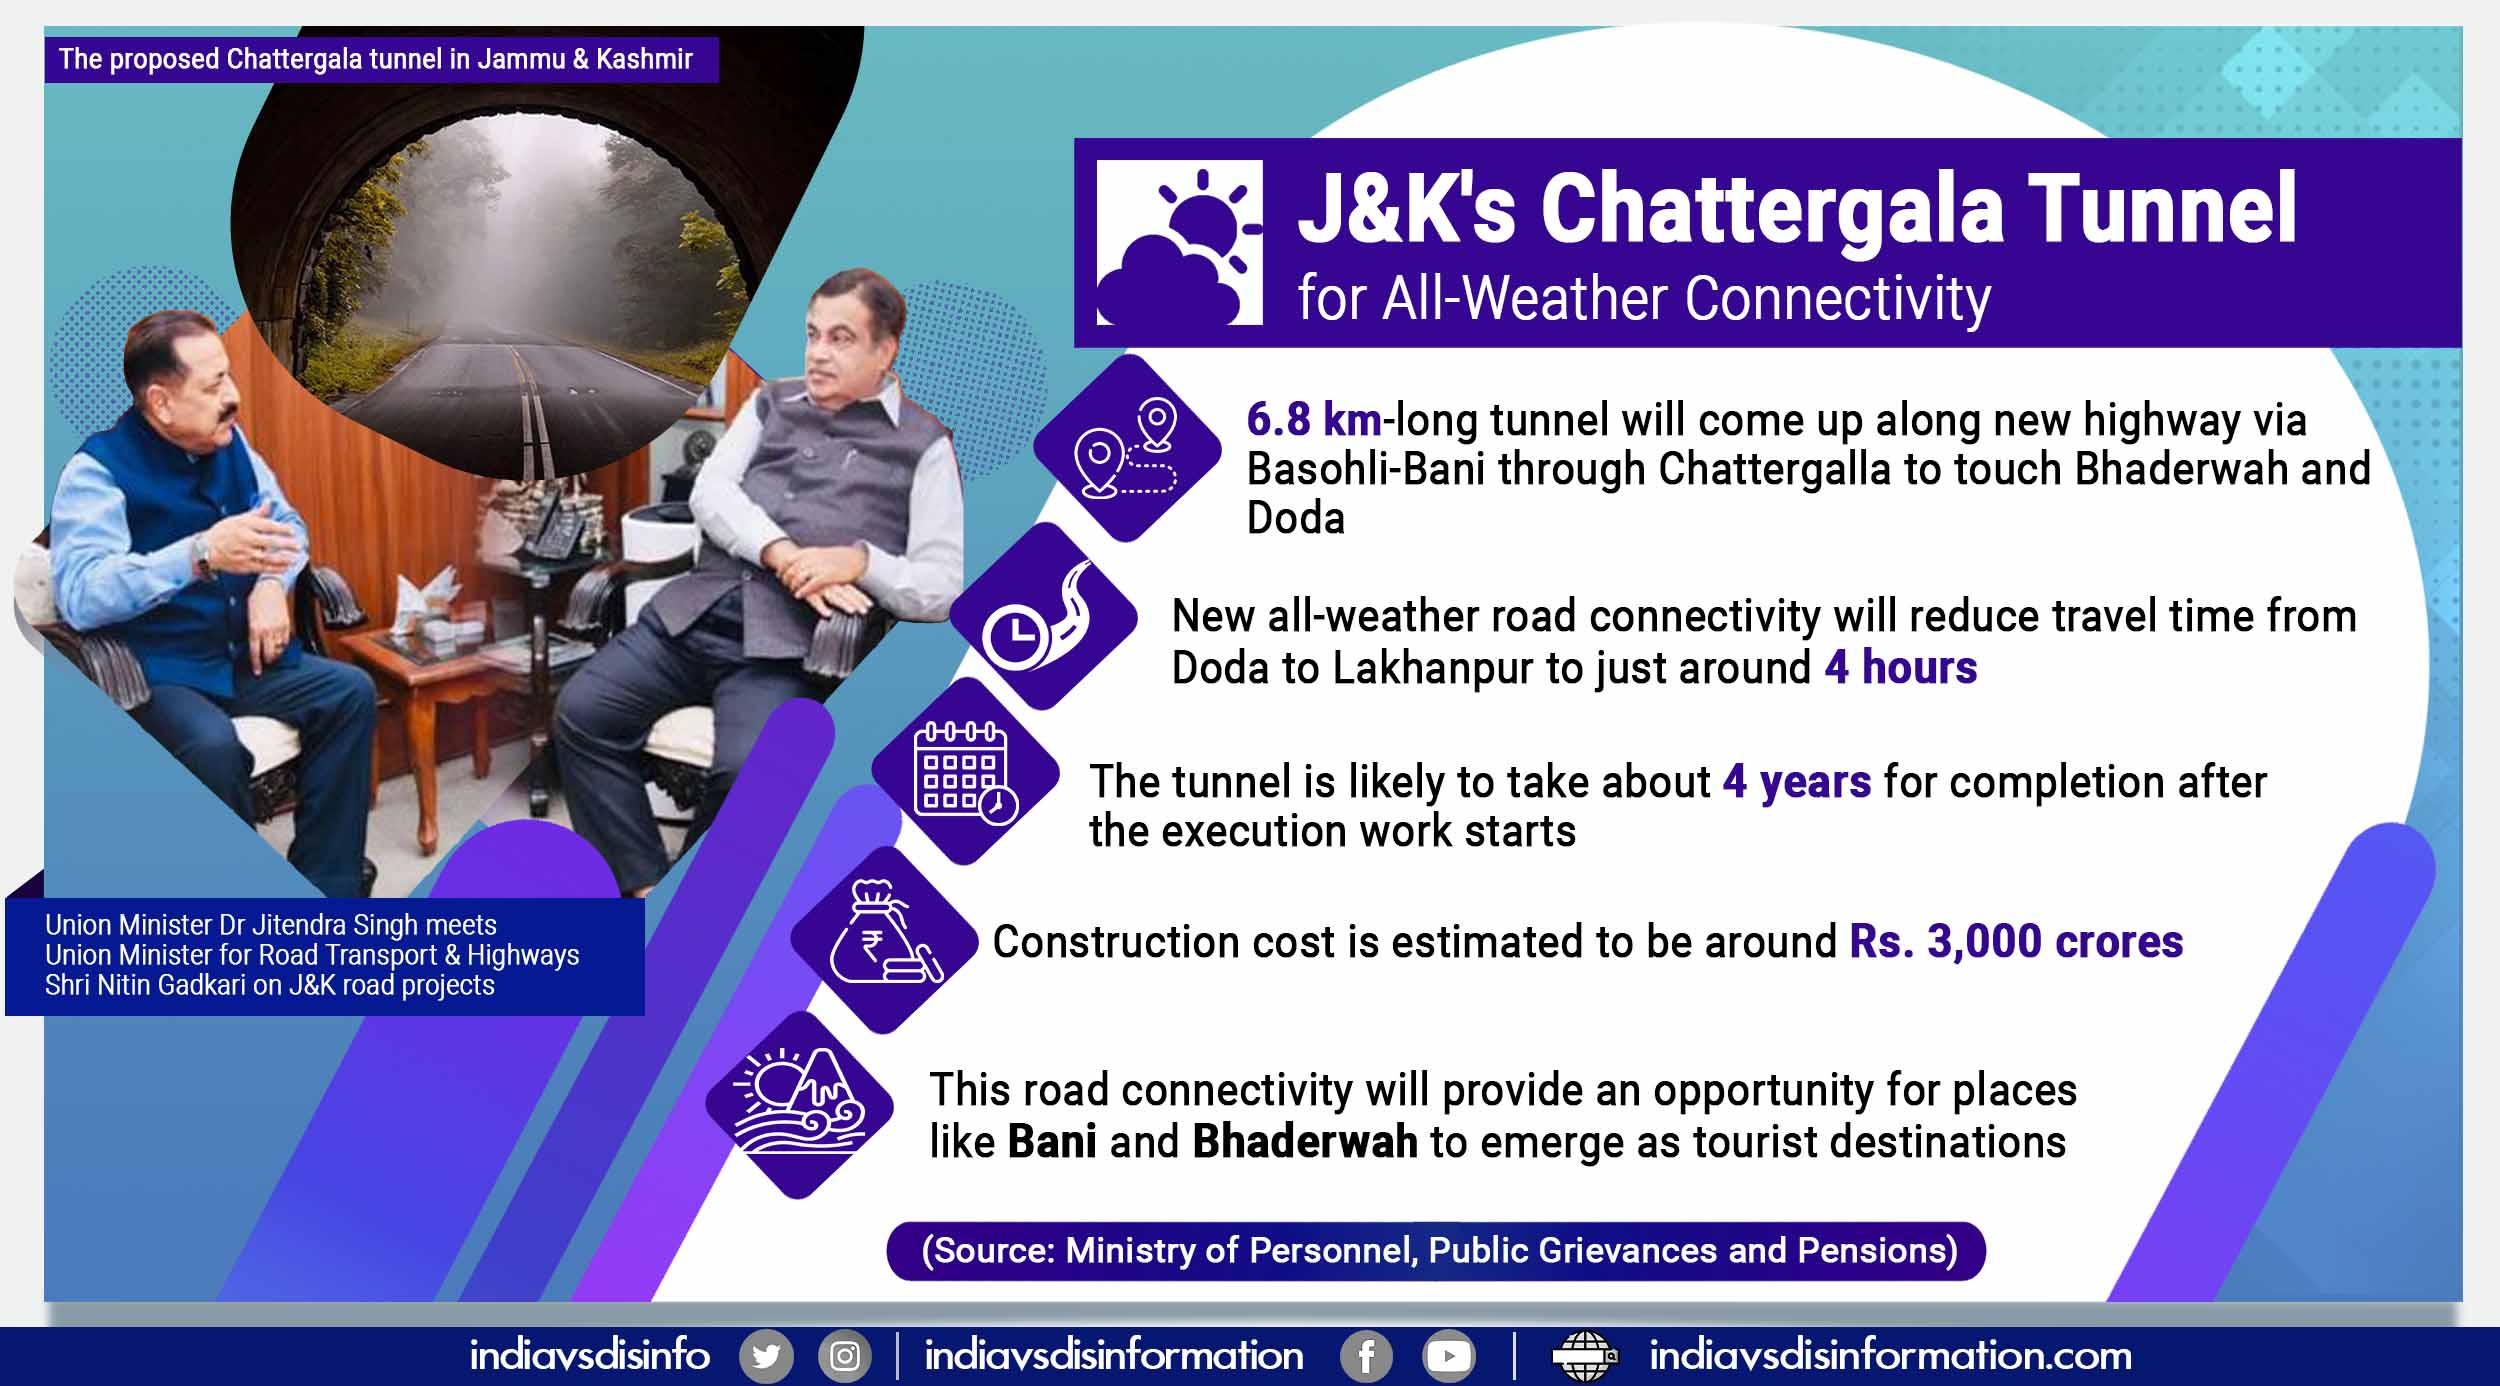 Chattergala Tunnel to give all-weather road connectivity between J&K's Doda, Kathua districts